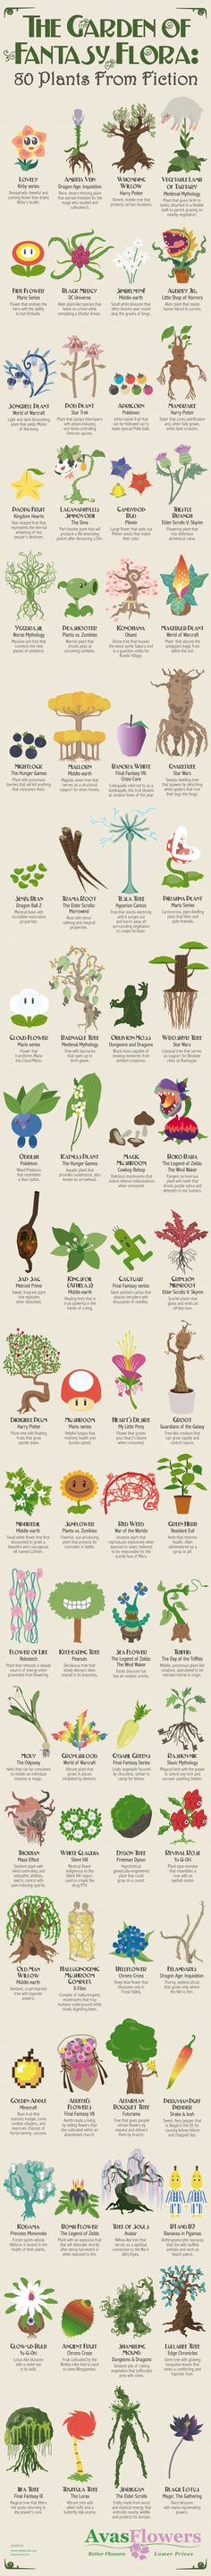 Famous plants from fiction #infographic | Ebook Friendly